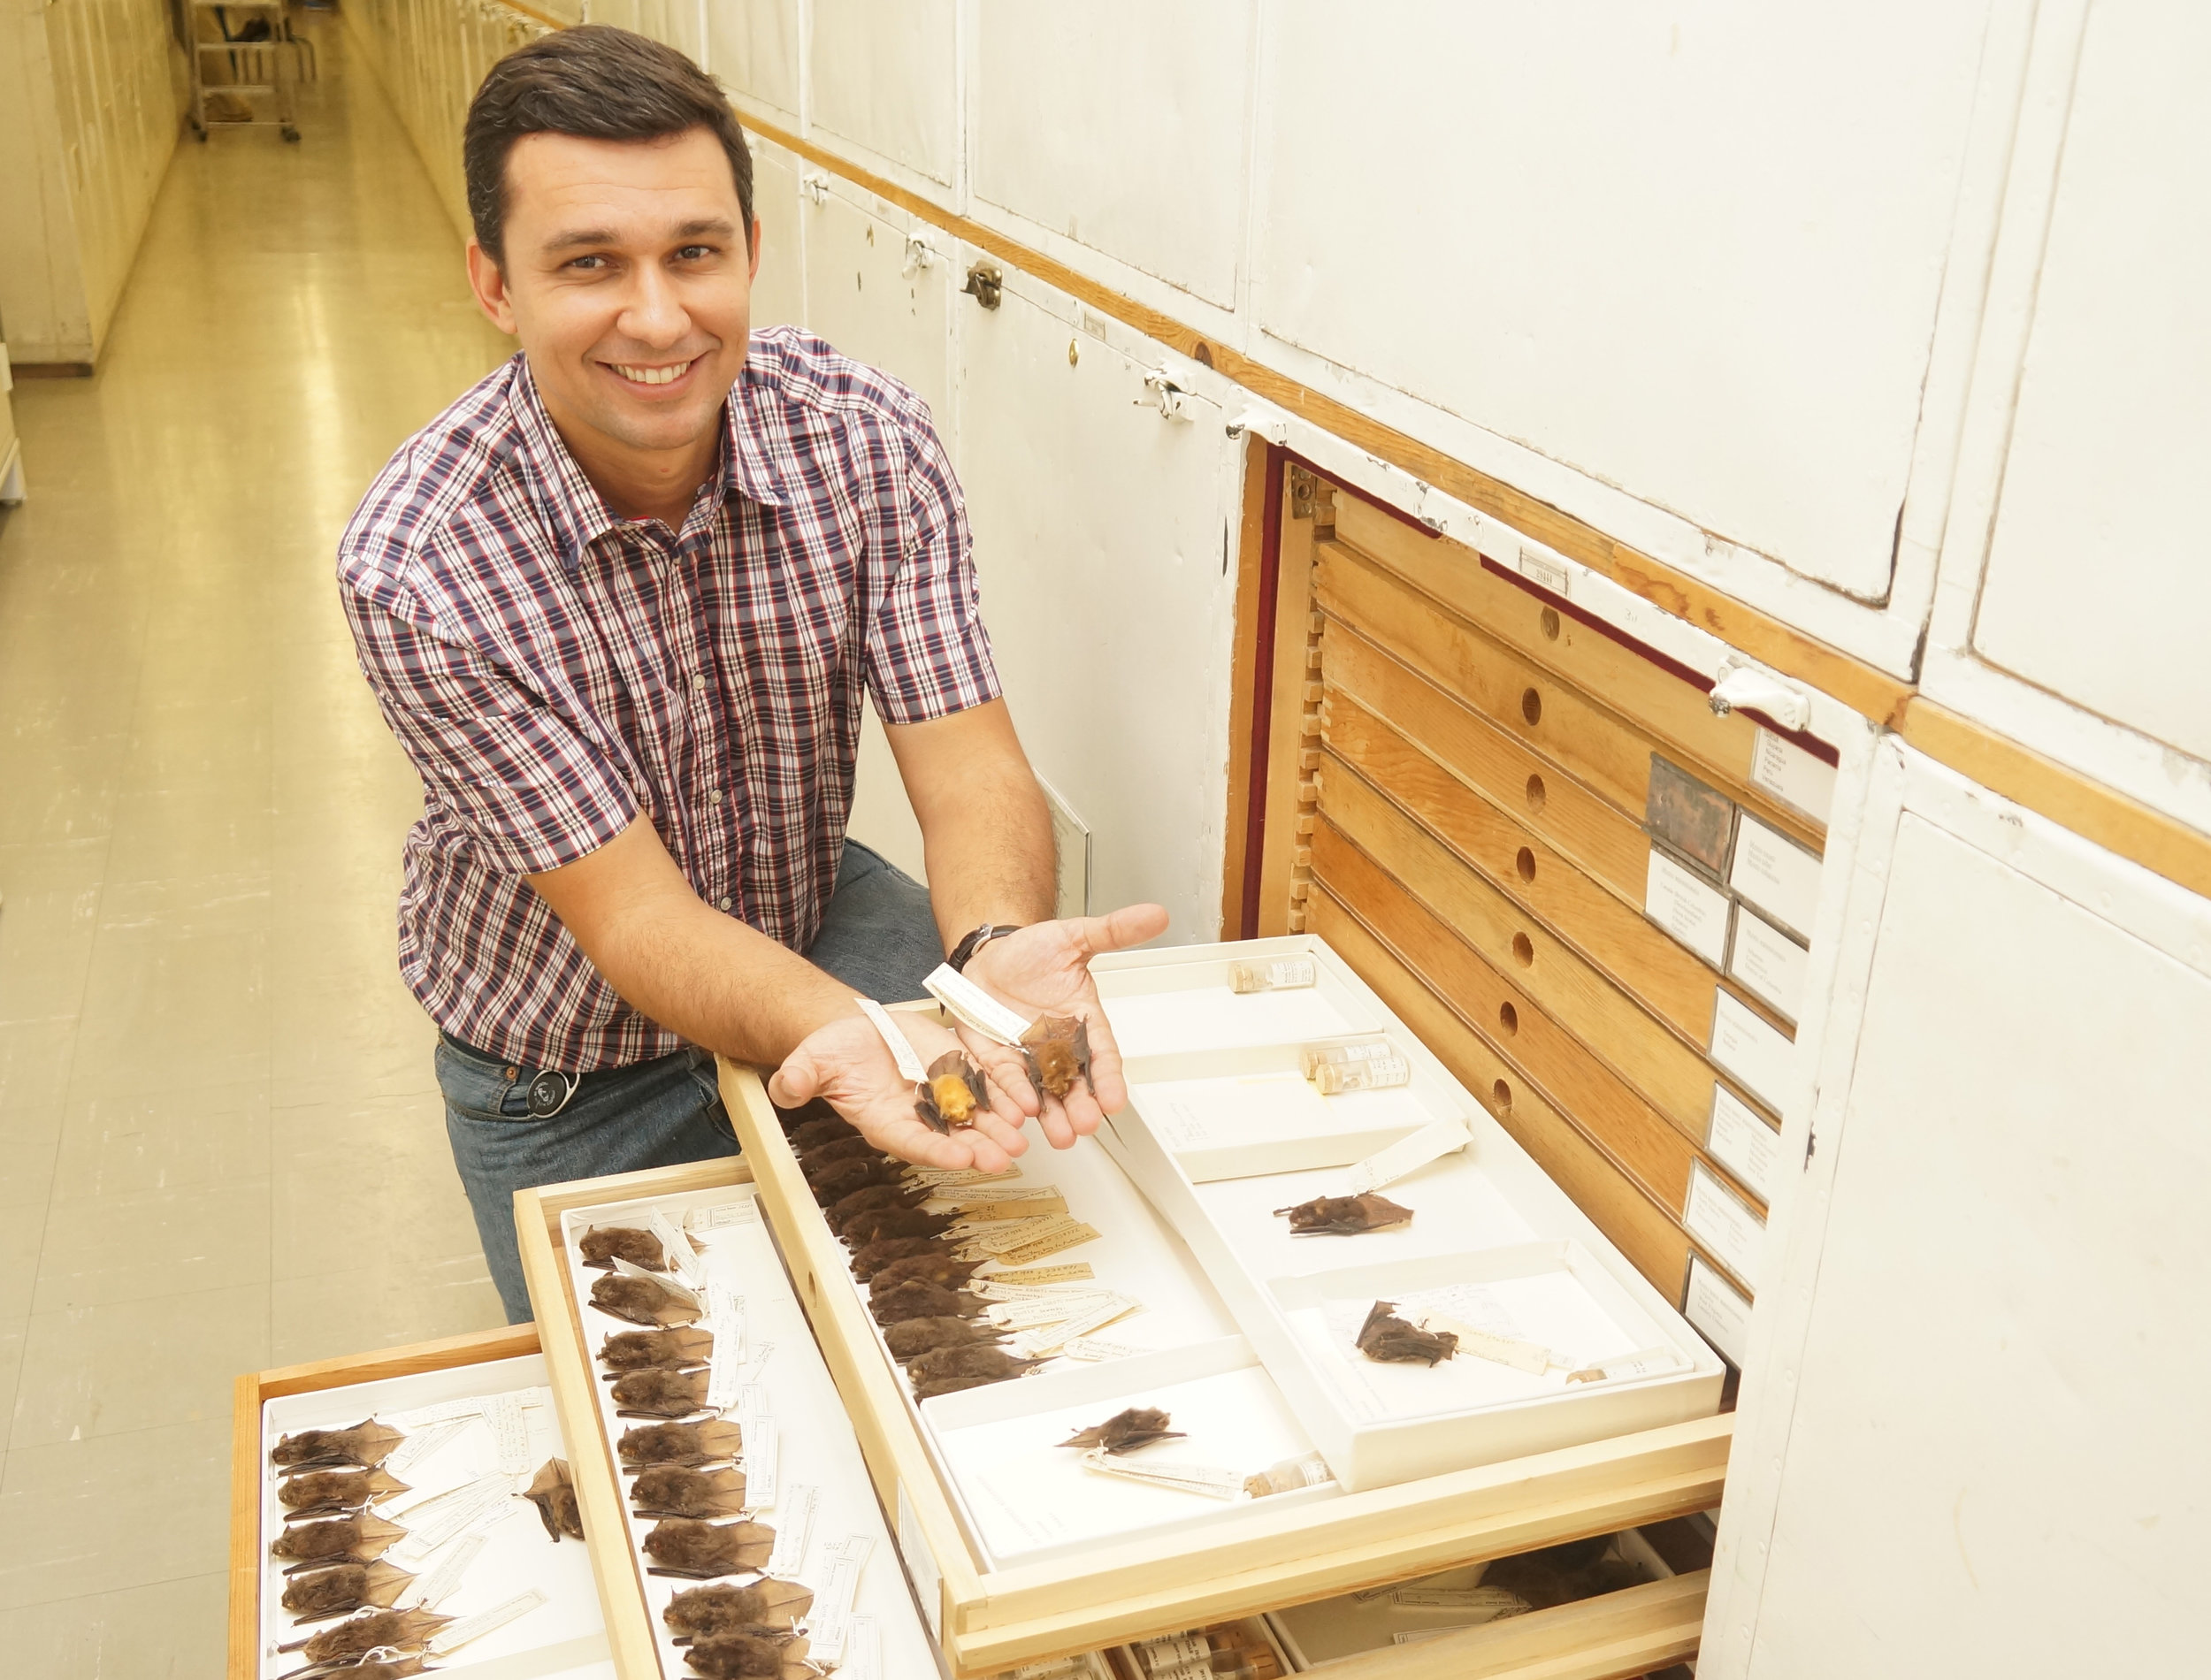 Ricardo Moratelli, a scientist at the Oswaldo Cruz Foundation (Brazil) and post-doctoral fellow at Smithsonian's National Museum of Natural History.